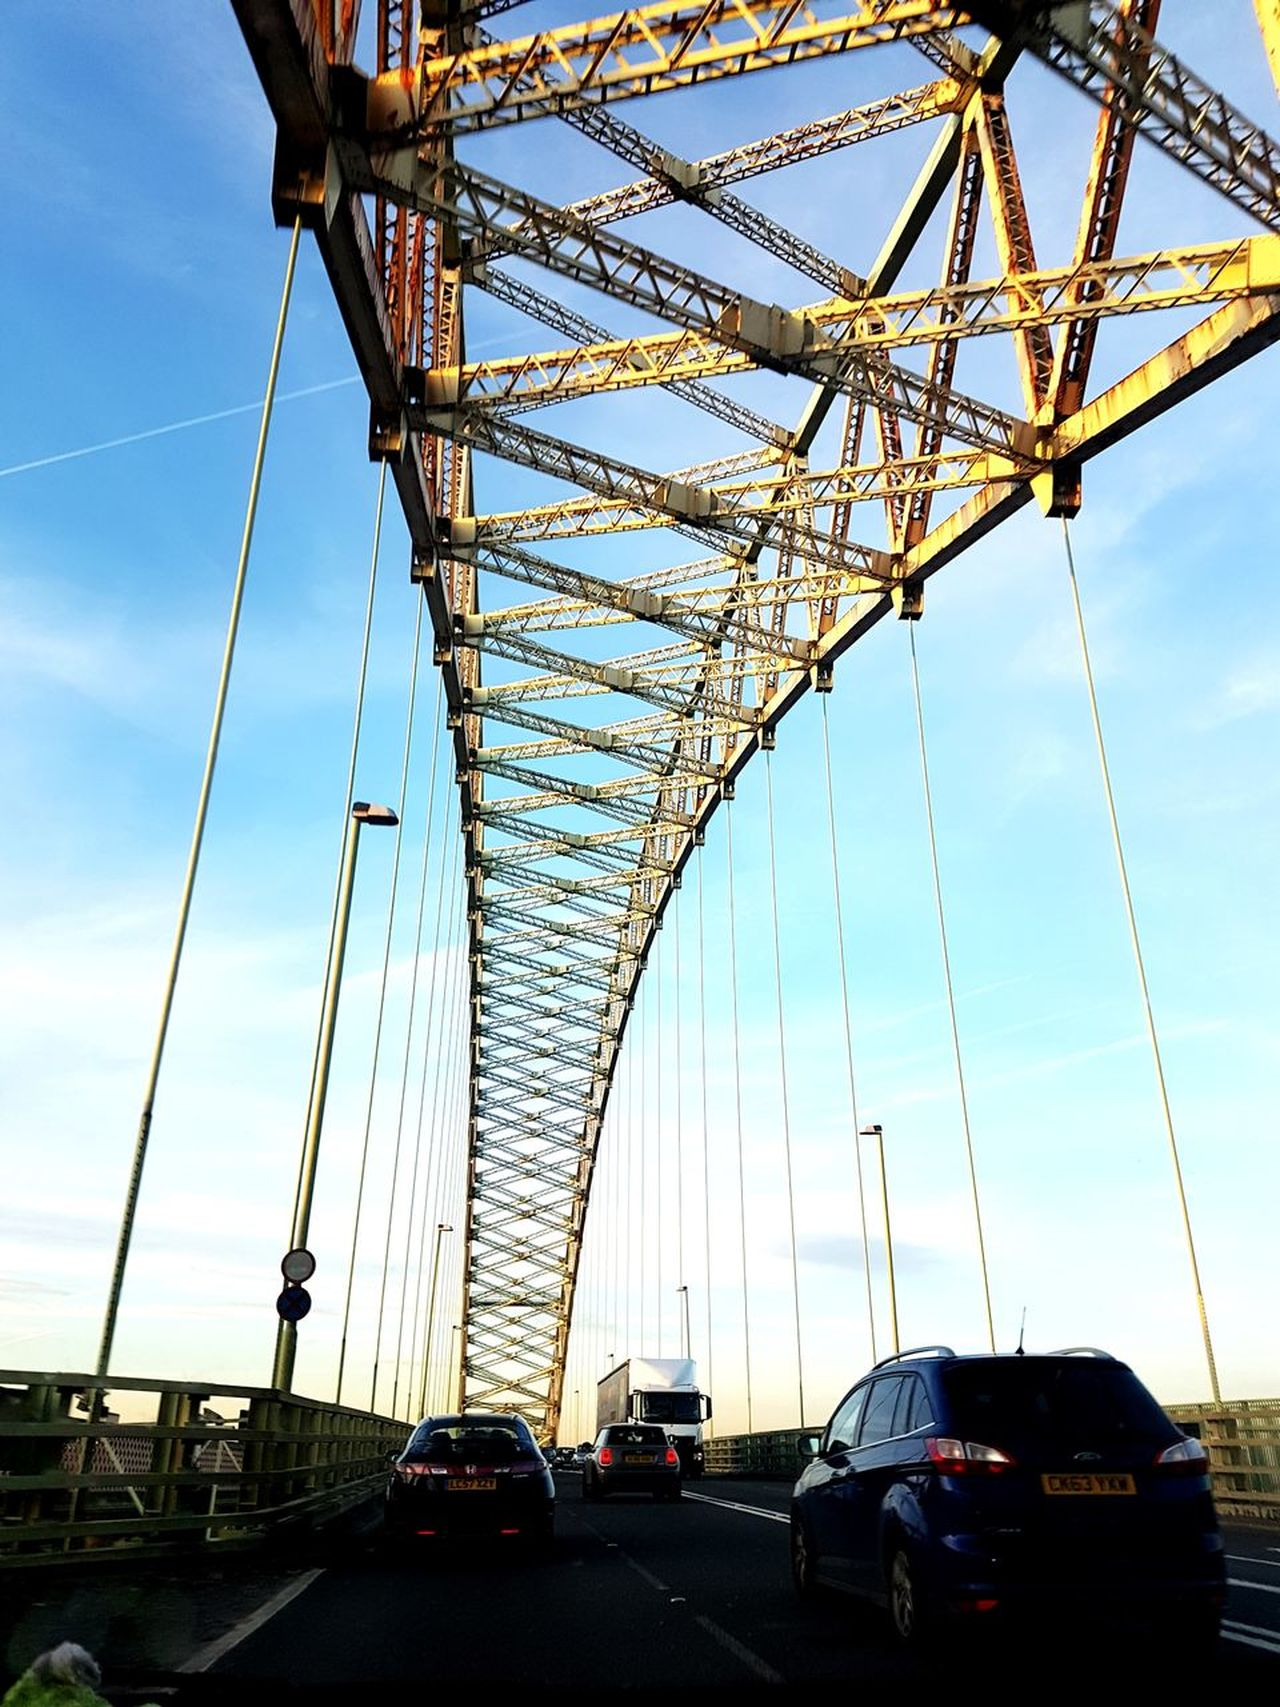 Bridge - Man Made Structure Transportation City Sky Outdoors Travel Destinations Architecture Suspension Bridge No People Vehicles Driving Vehicles On Road The Way Foward Low Angle View Backgrounds Metallic Structure Everyday Moments Everydayphotography Real Lives